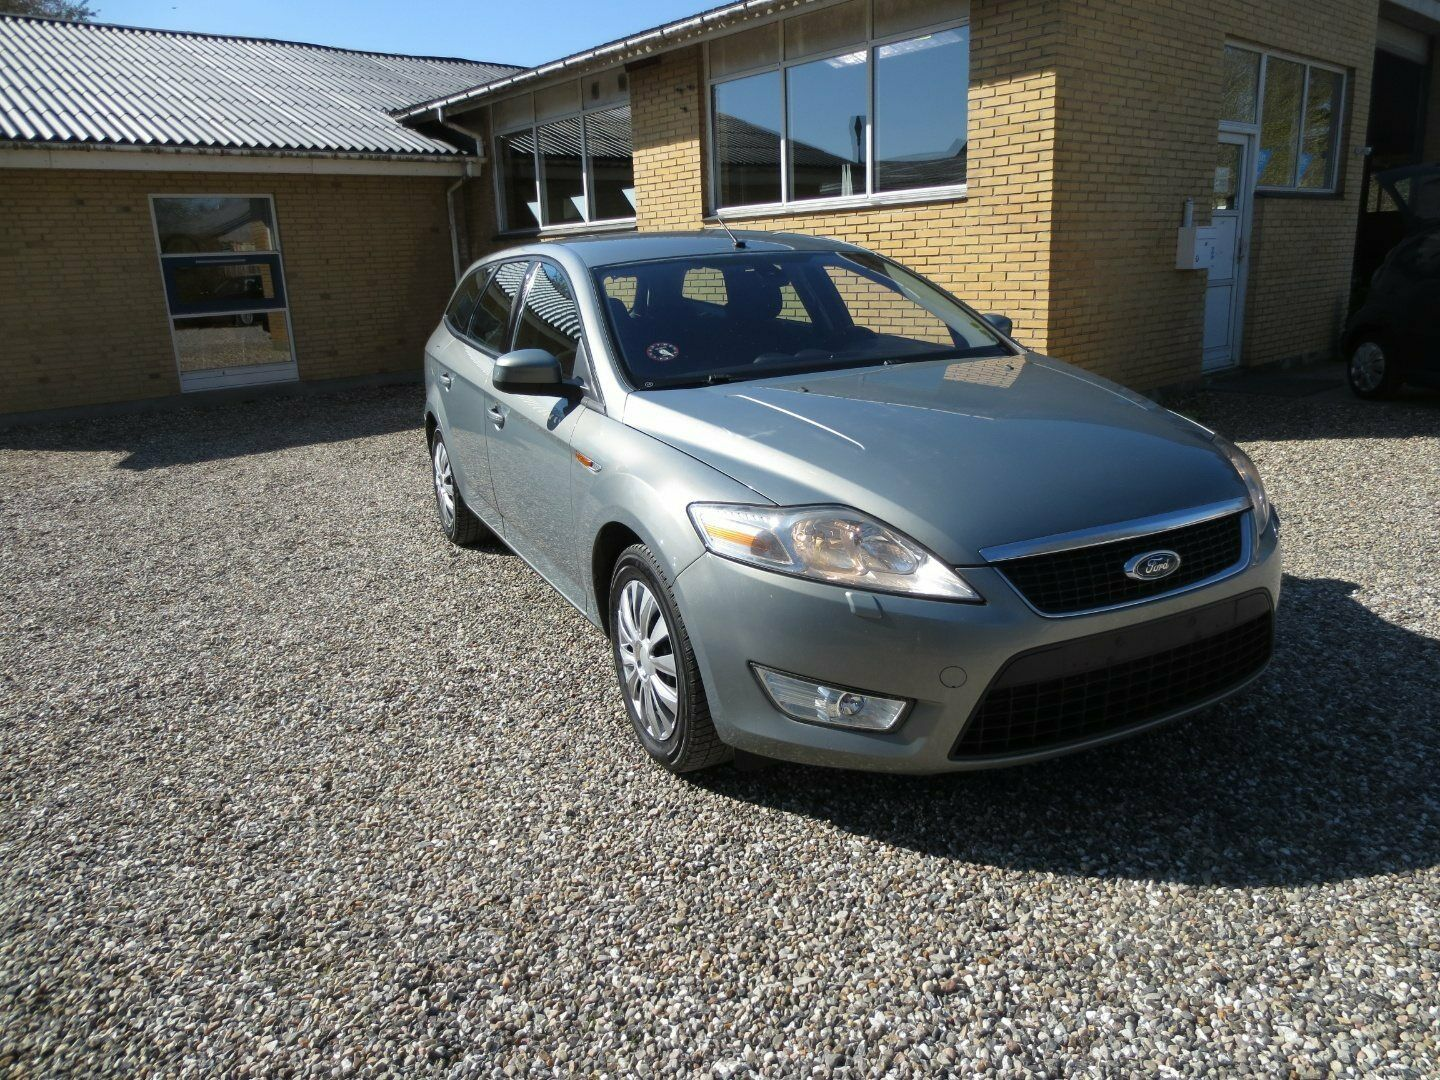 Ford Mondeo 1,8 TDCi 125 Trend stc. 5d - 29.900 kr.